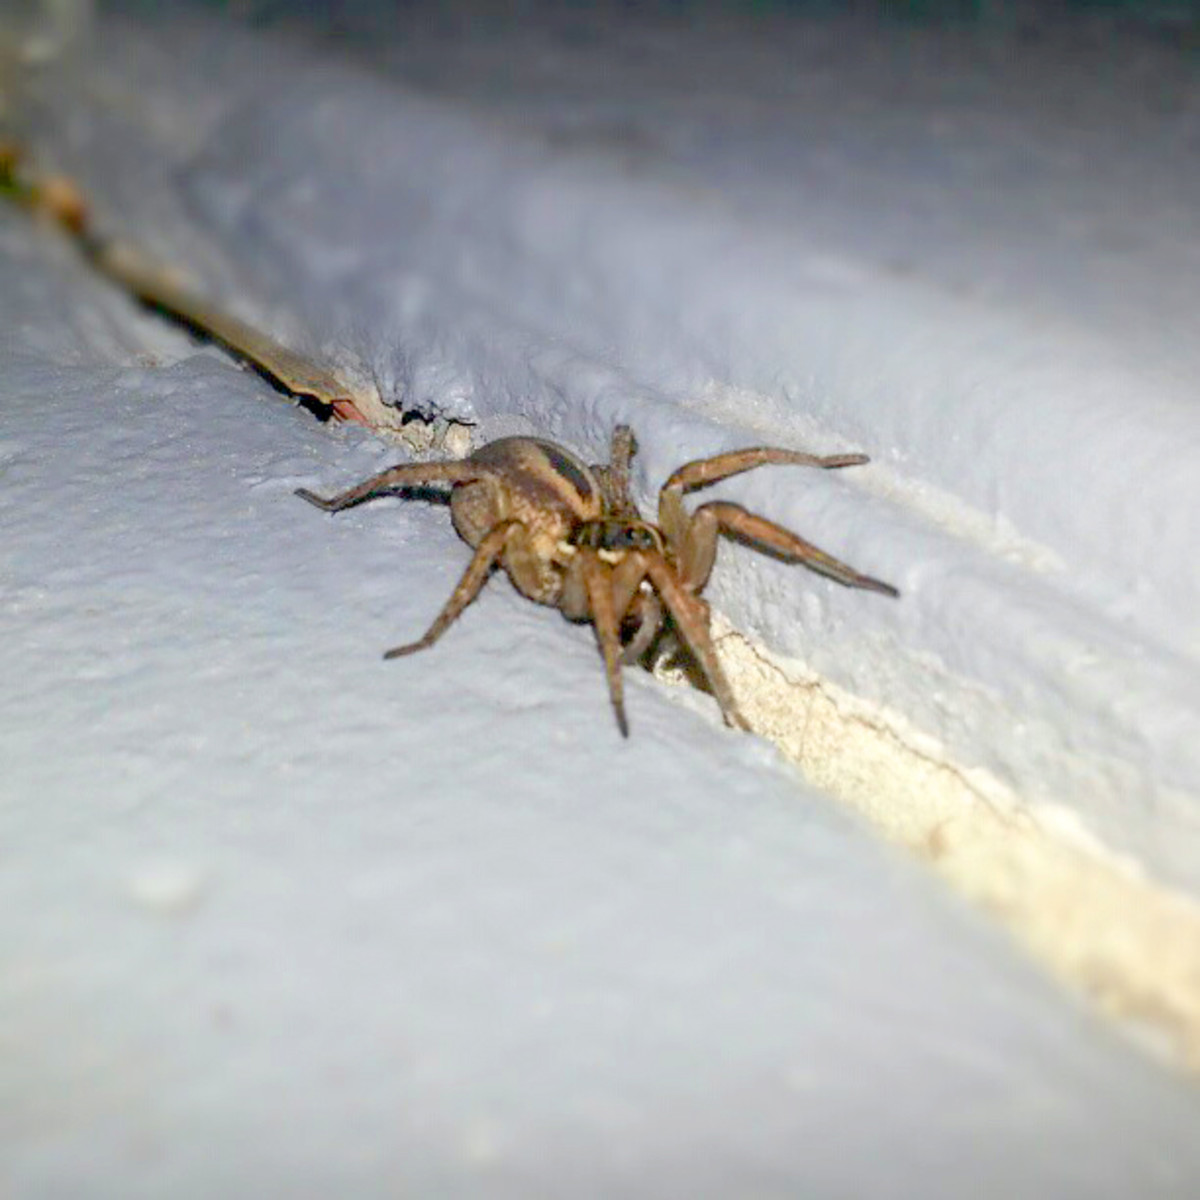 A Wolf Spider in Delray Beach, Florida.  These spiders are large and hairy with thick legs.  They don't build webs, instead they capture their prey by running after them.  They will eat cockroaches and attack southern black widows.